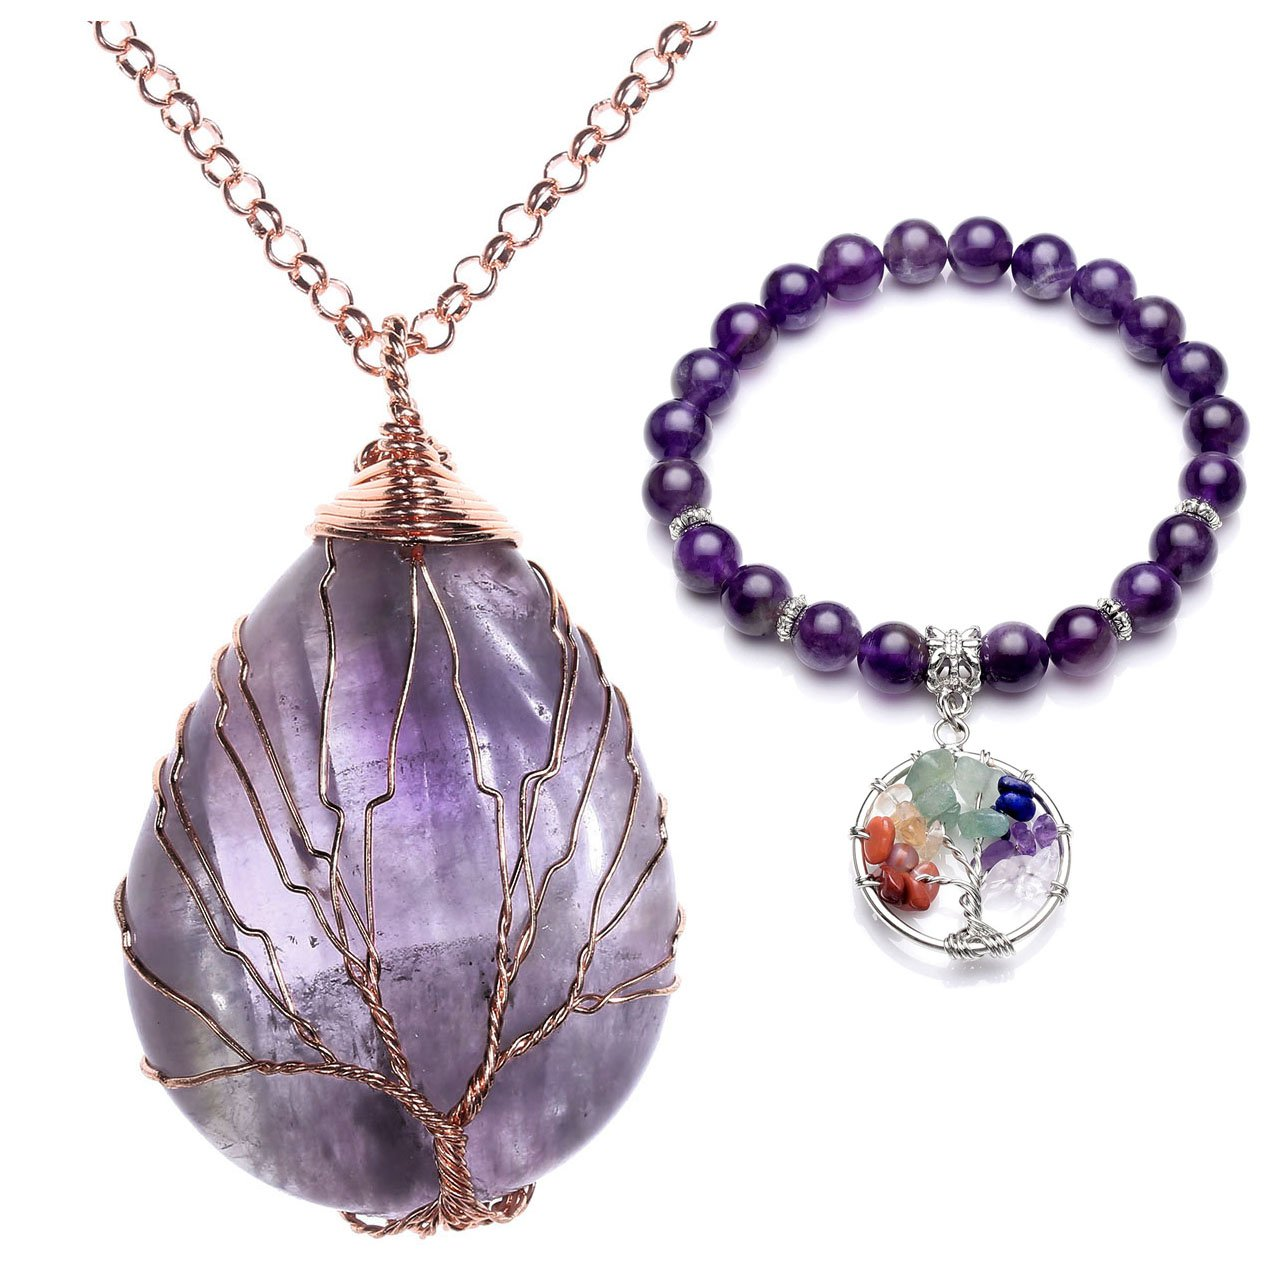 Top Plaza Natural Healing Crystal Chakra Tree of Life Wire Wrap Water Drop Pendant Necklace Bracelet Jewelry Set(Amethyst #2)